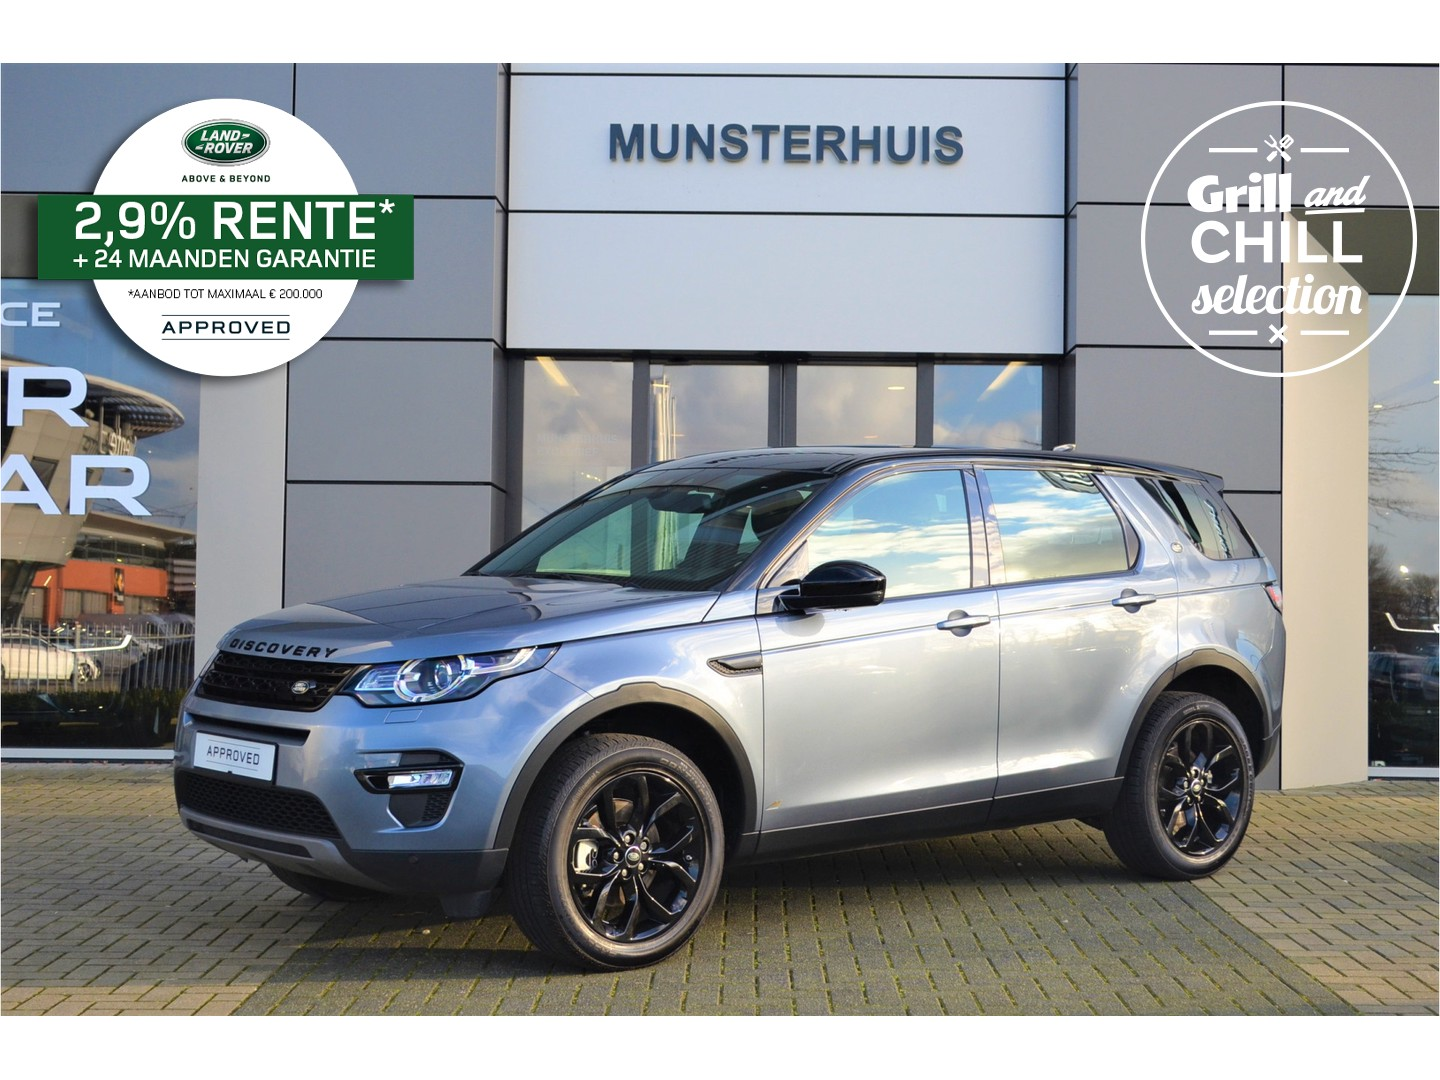 Land rover Discovery sport 2.0 td4 urban series se